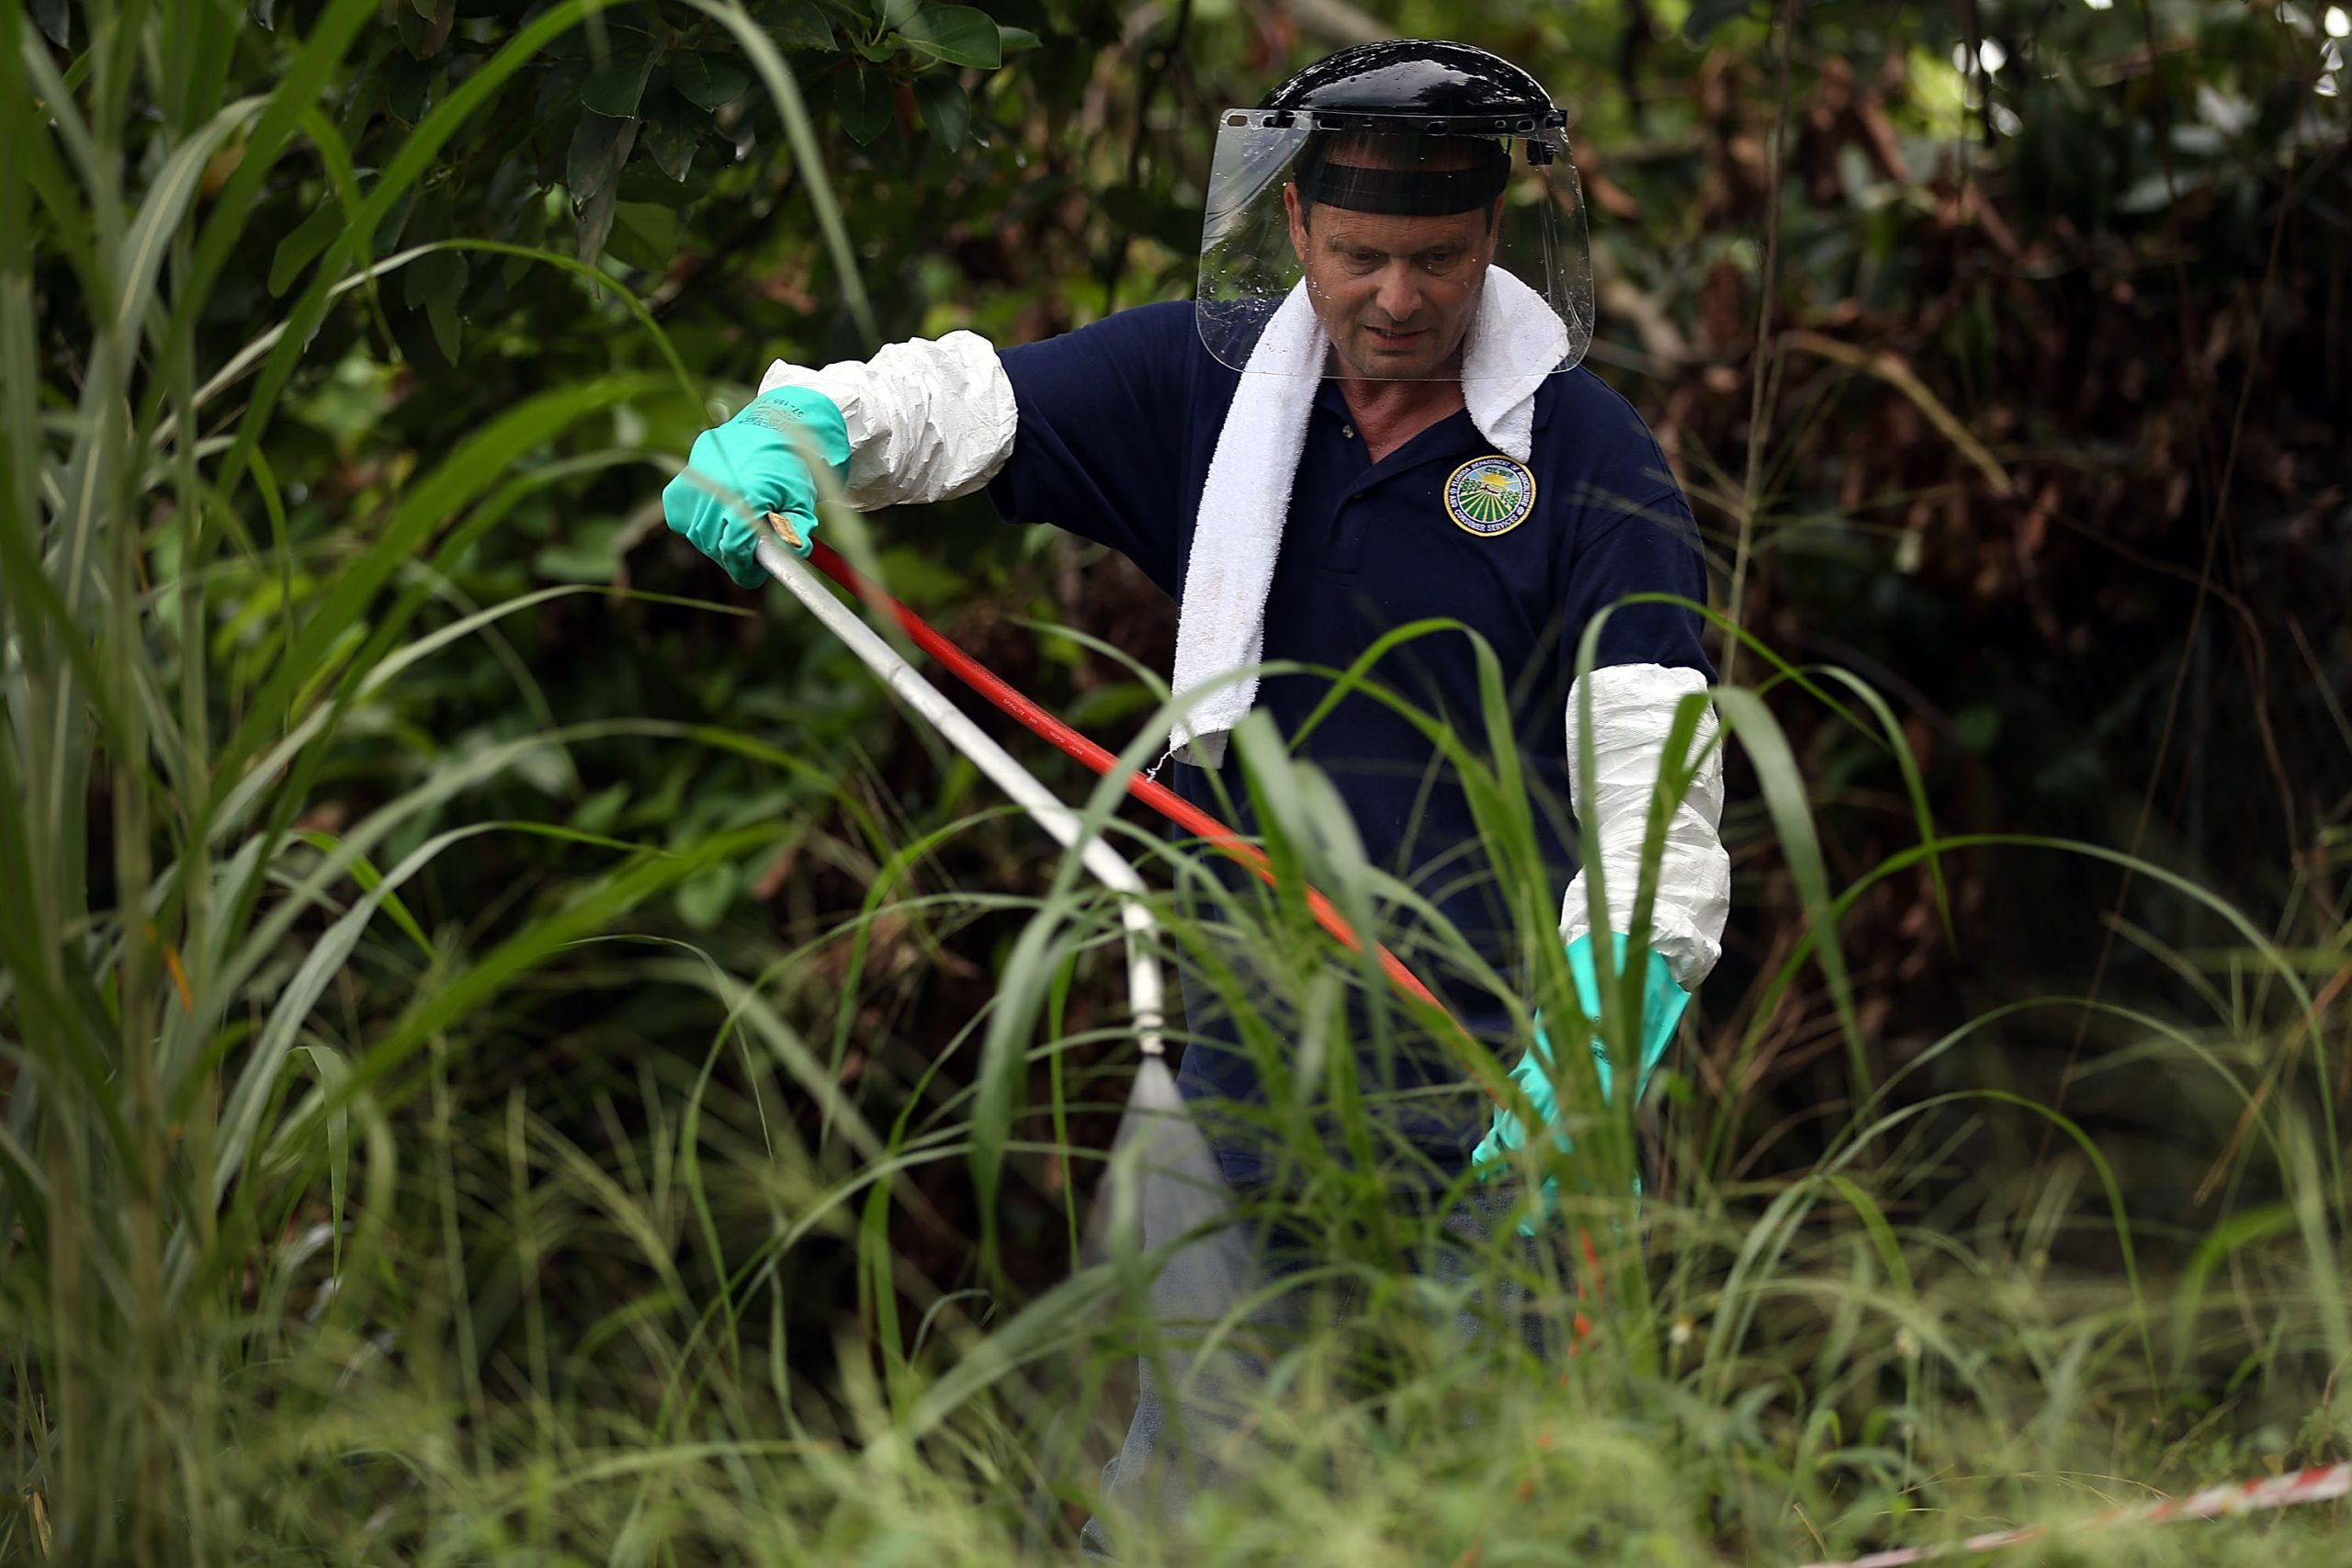 New study shows that, when it comes to pesticides and children, the EPA has looked the other way